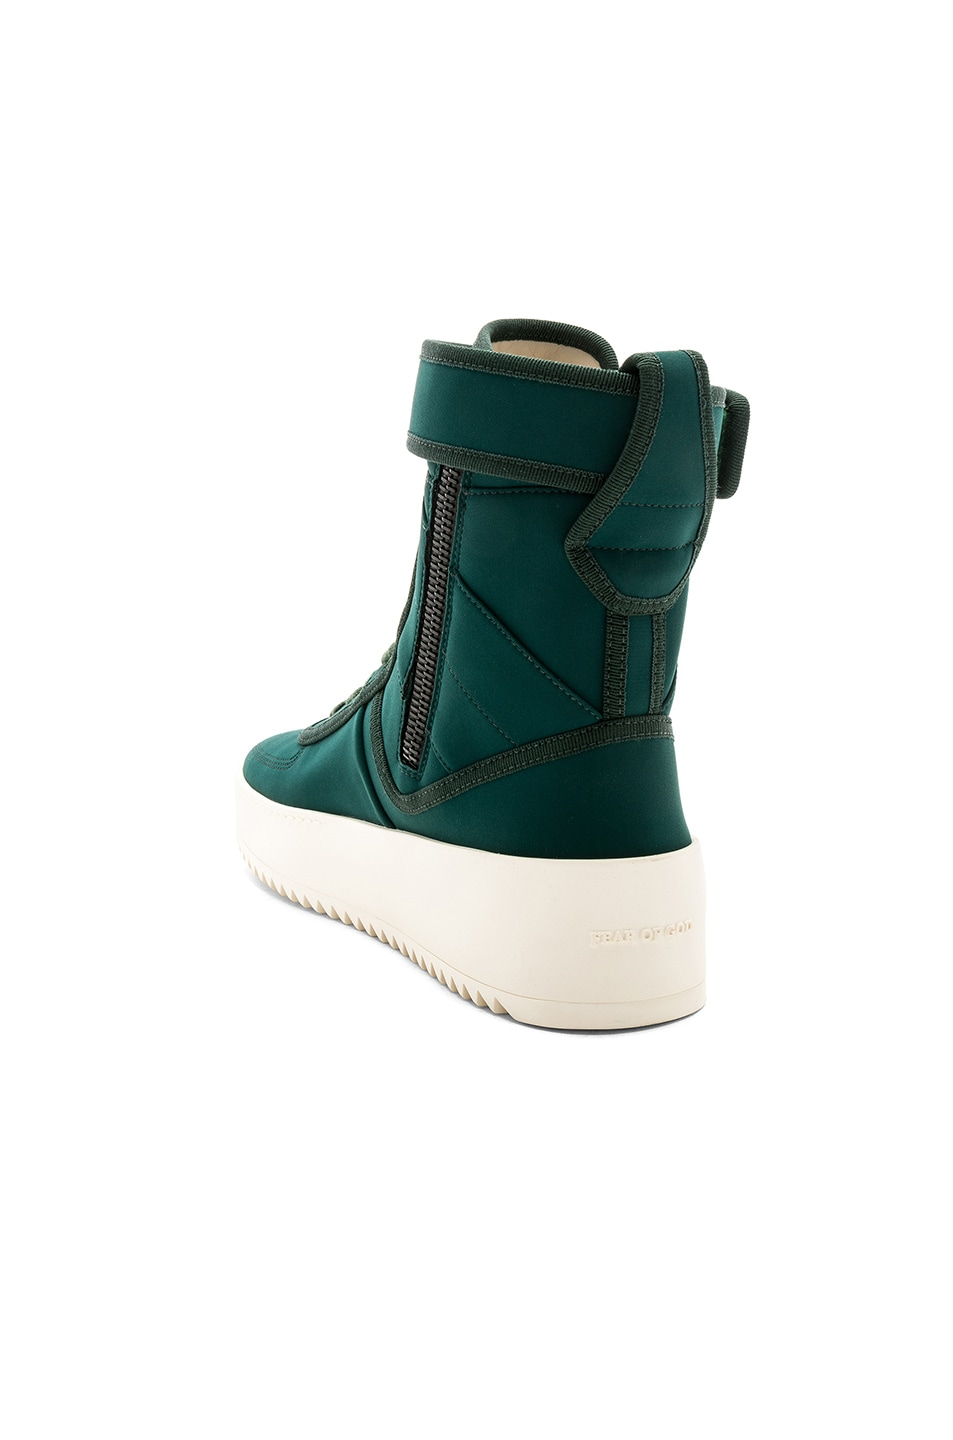 Military Nylon High-top Sneakers - Bright blueFear of God kFQvOggiS7